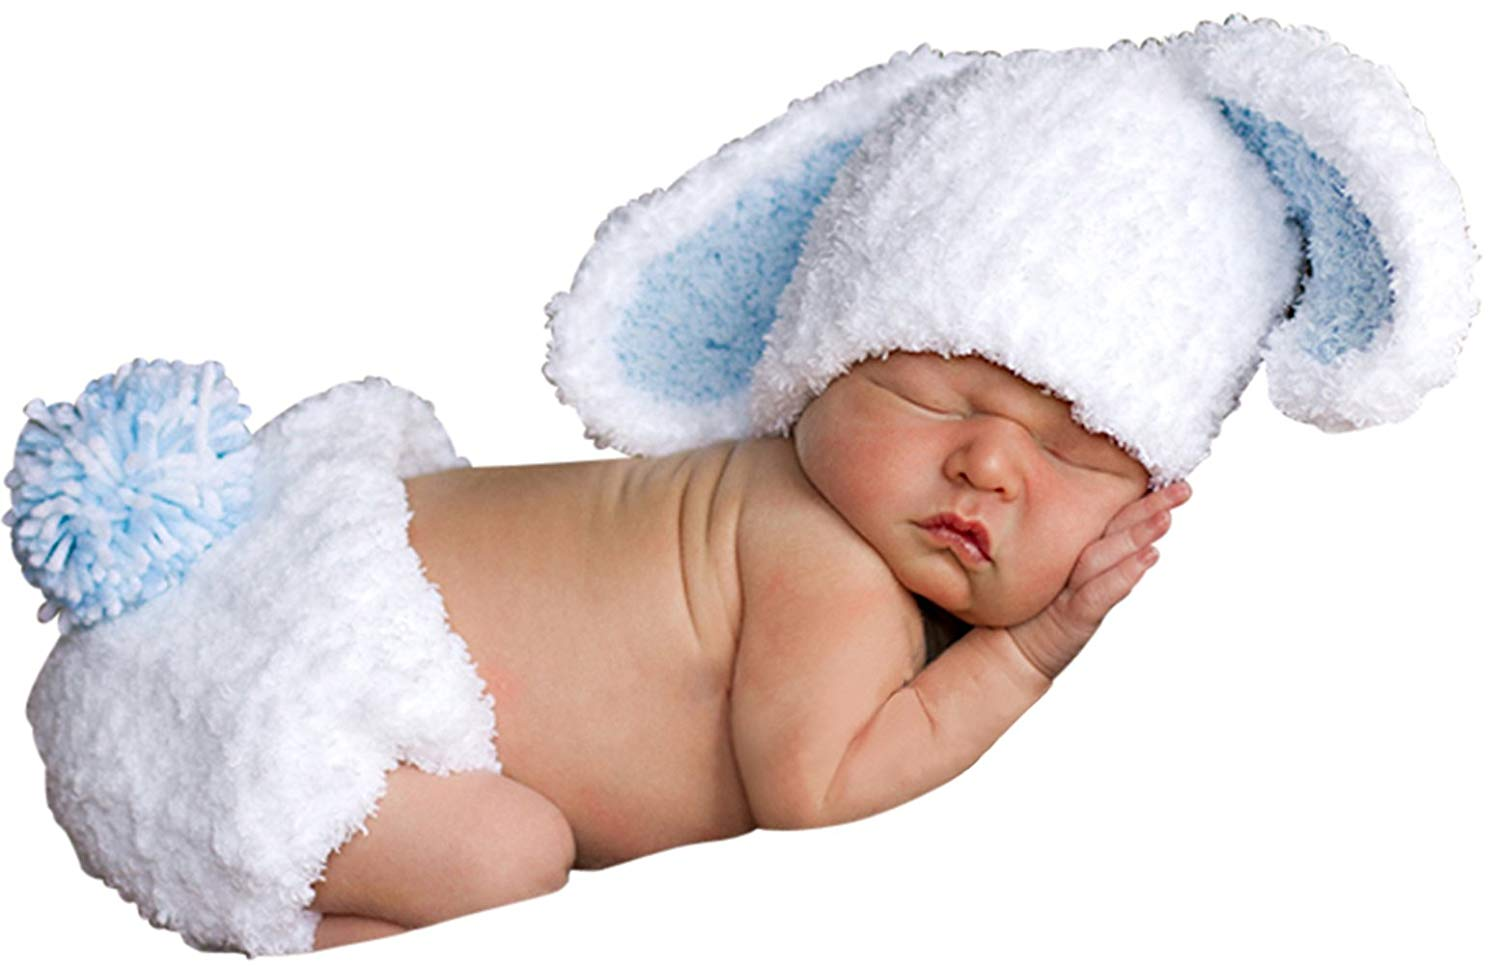 f00ca0381f1 Get Quotations · Melondipity Boys Handmade Bunny Baby Hat   Diaper Cover  Set - Super Soft Beanie